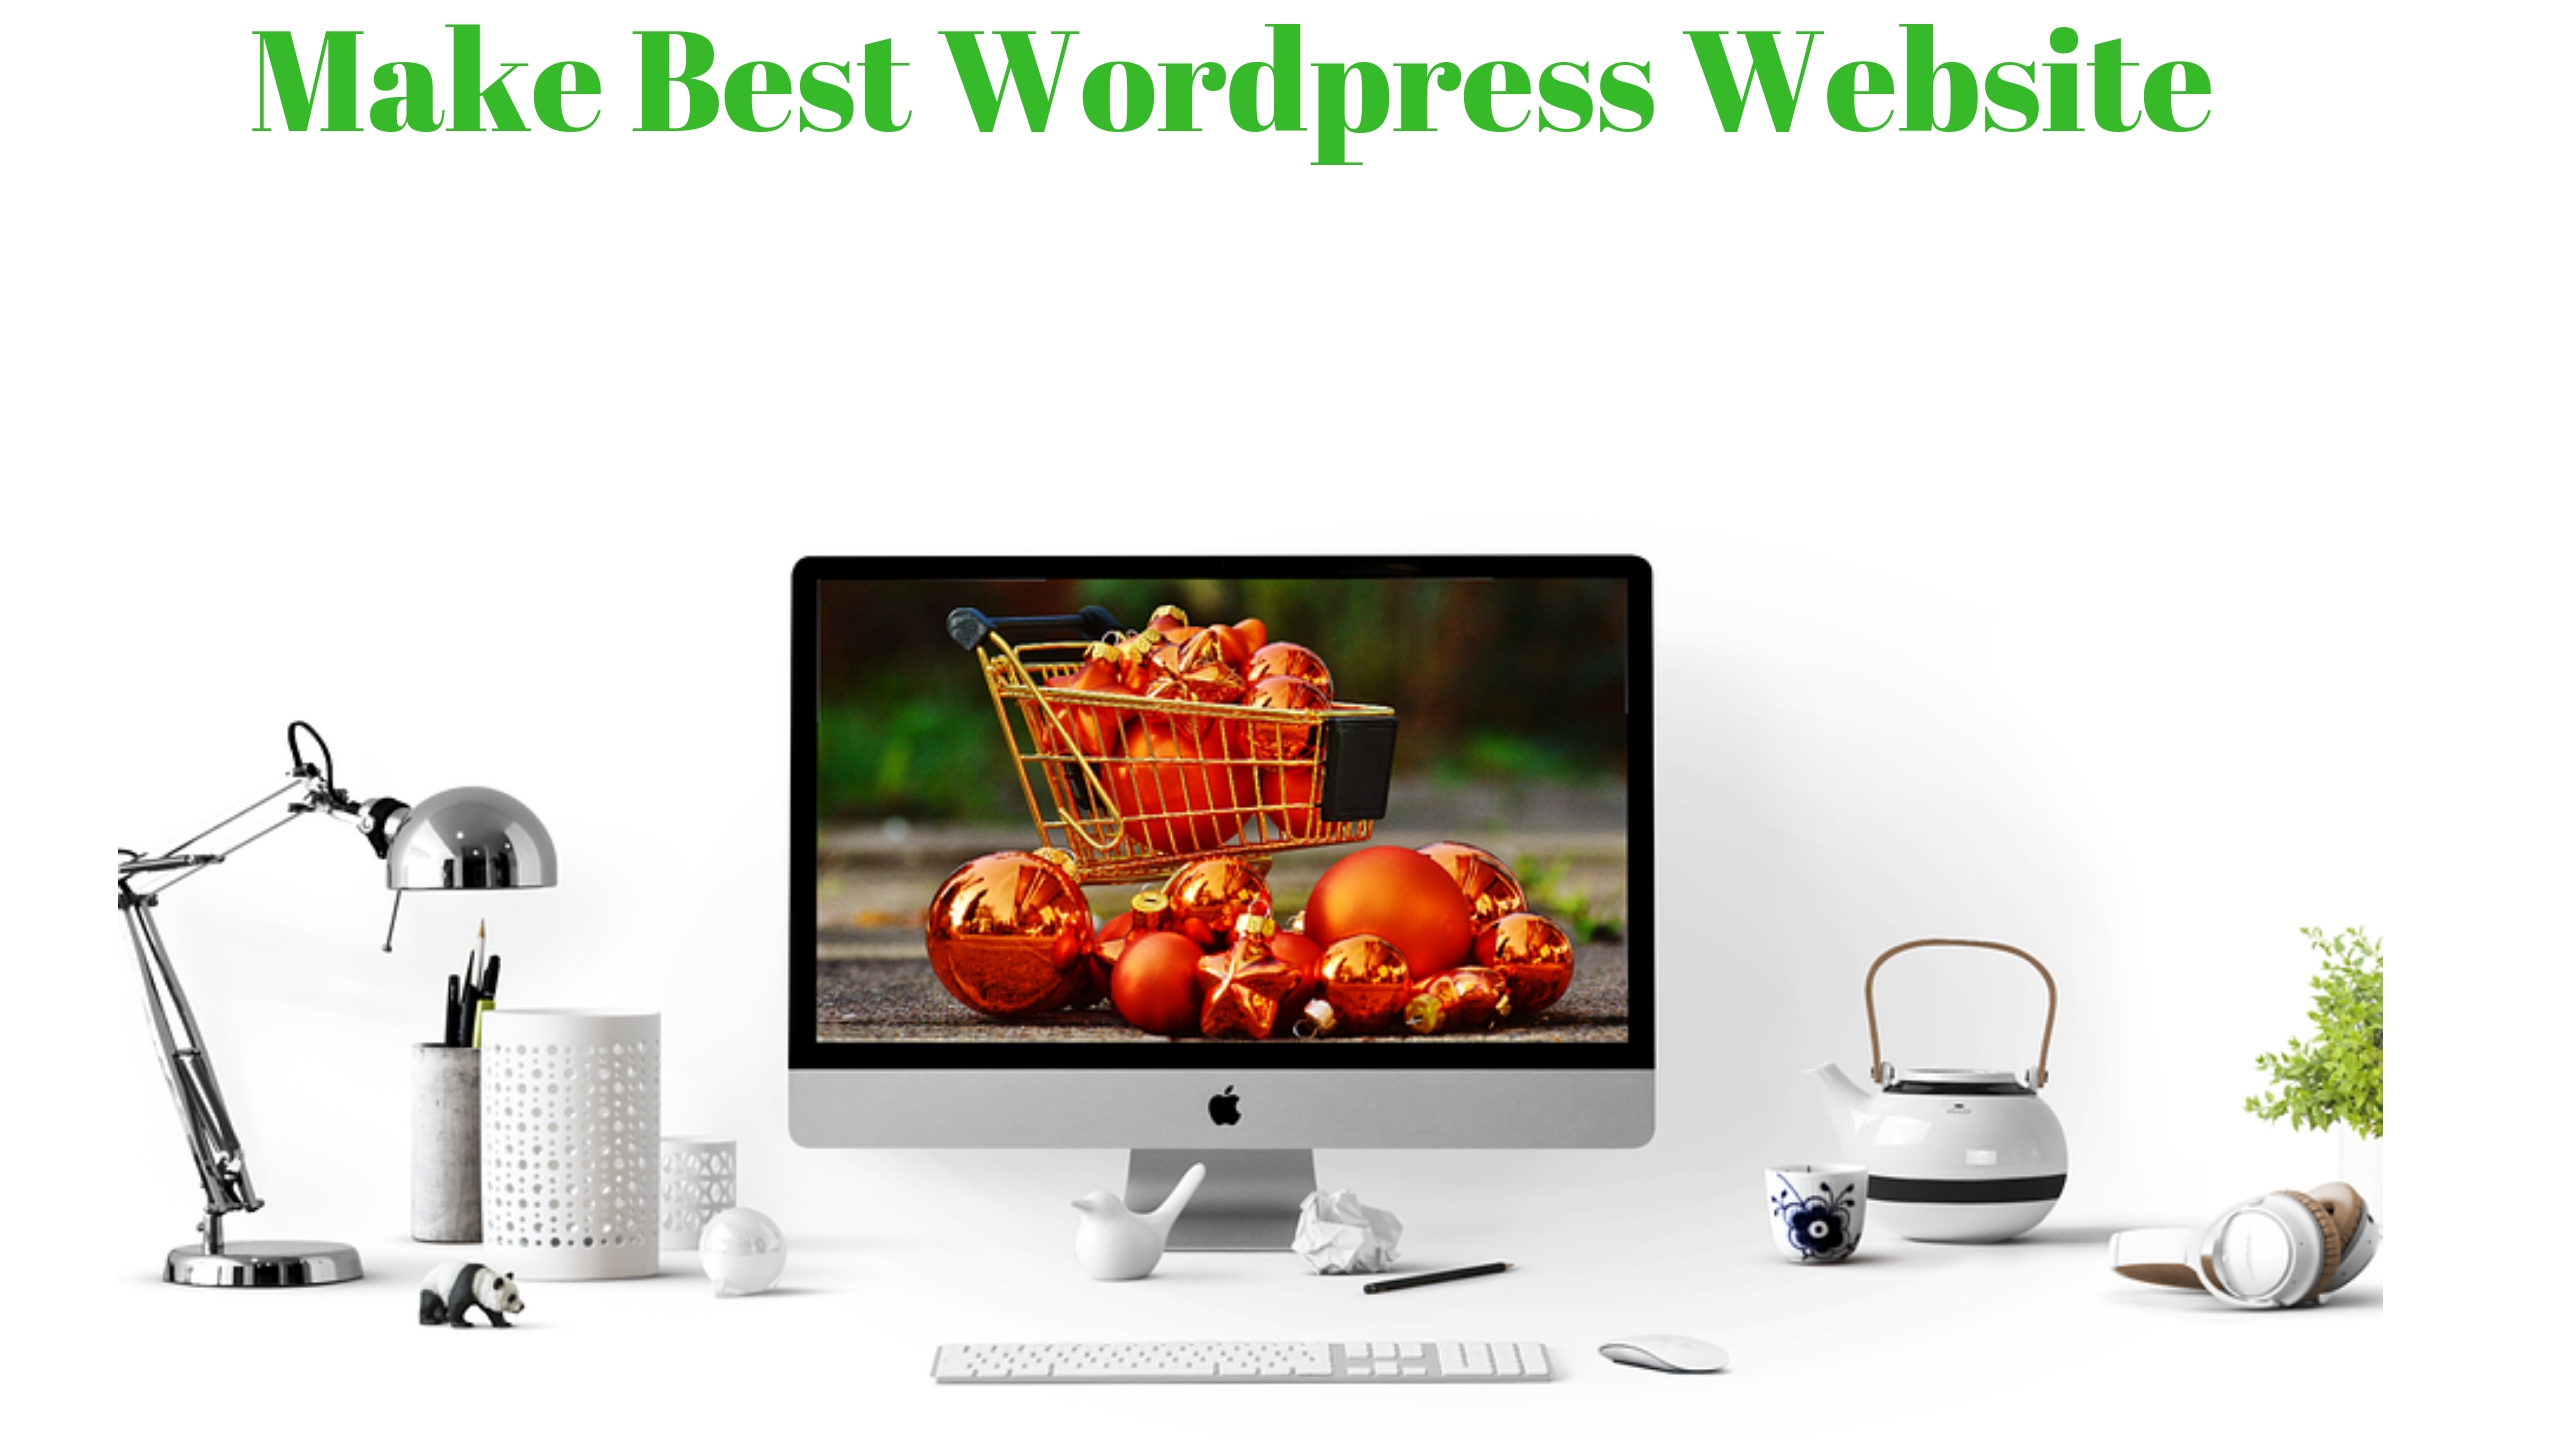 Make Best Wordpress Website